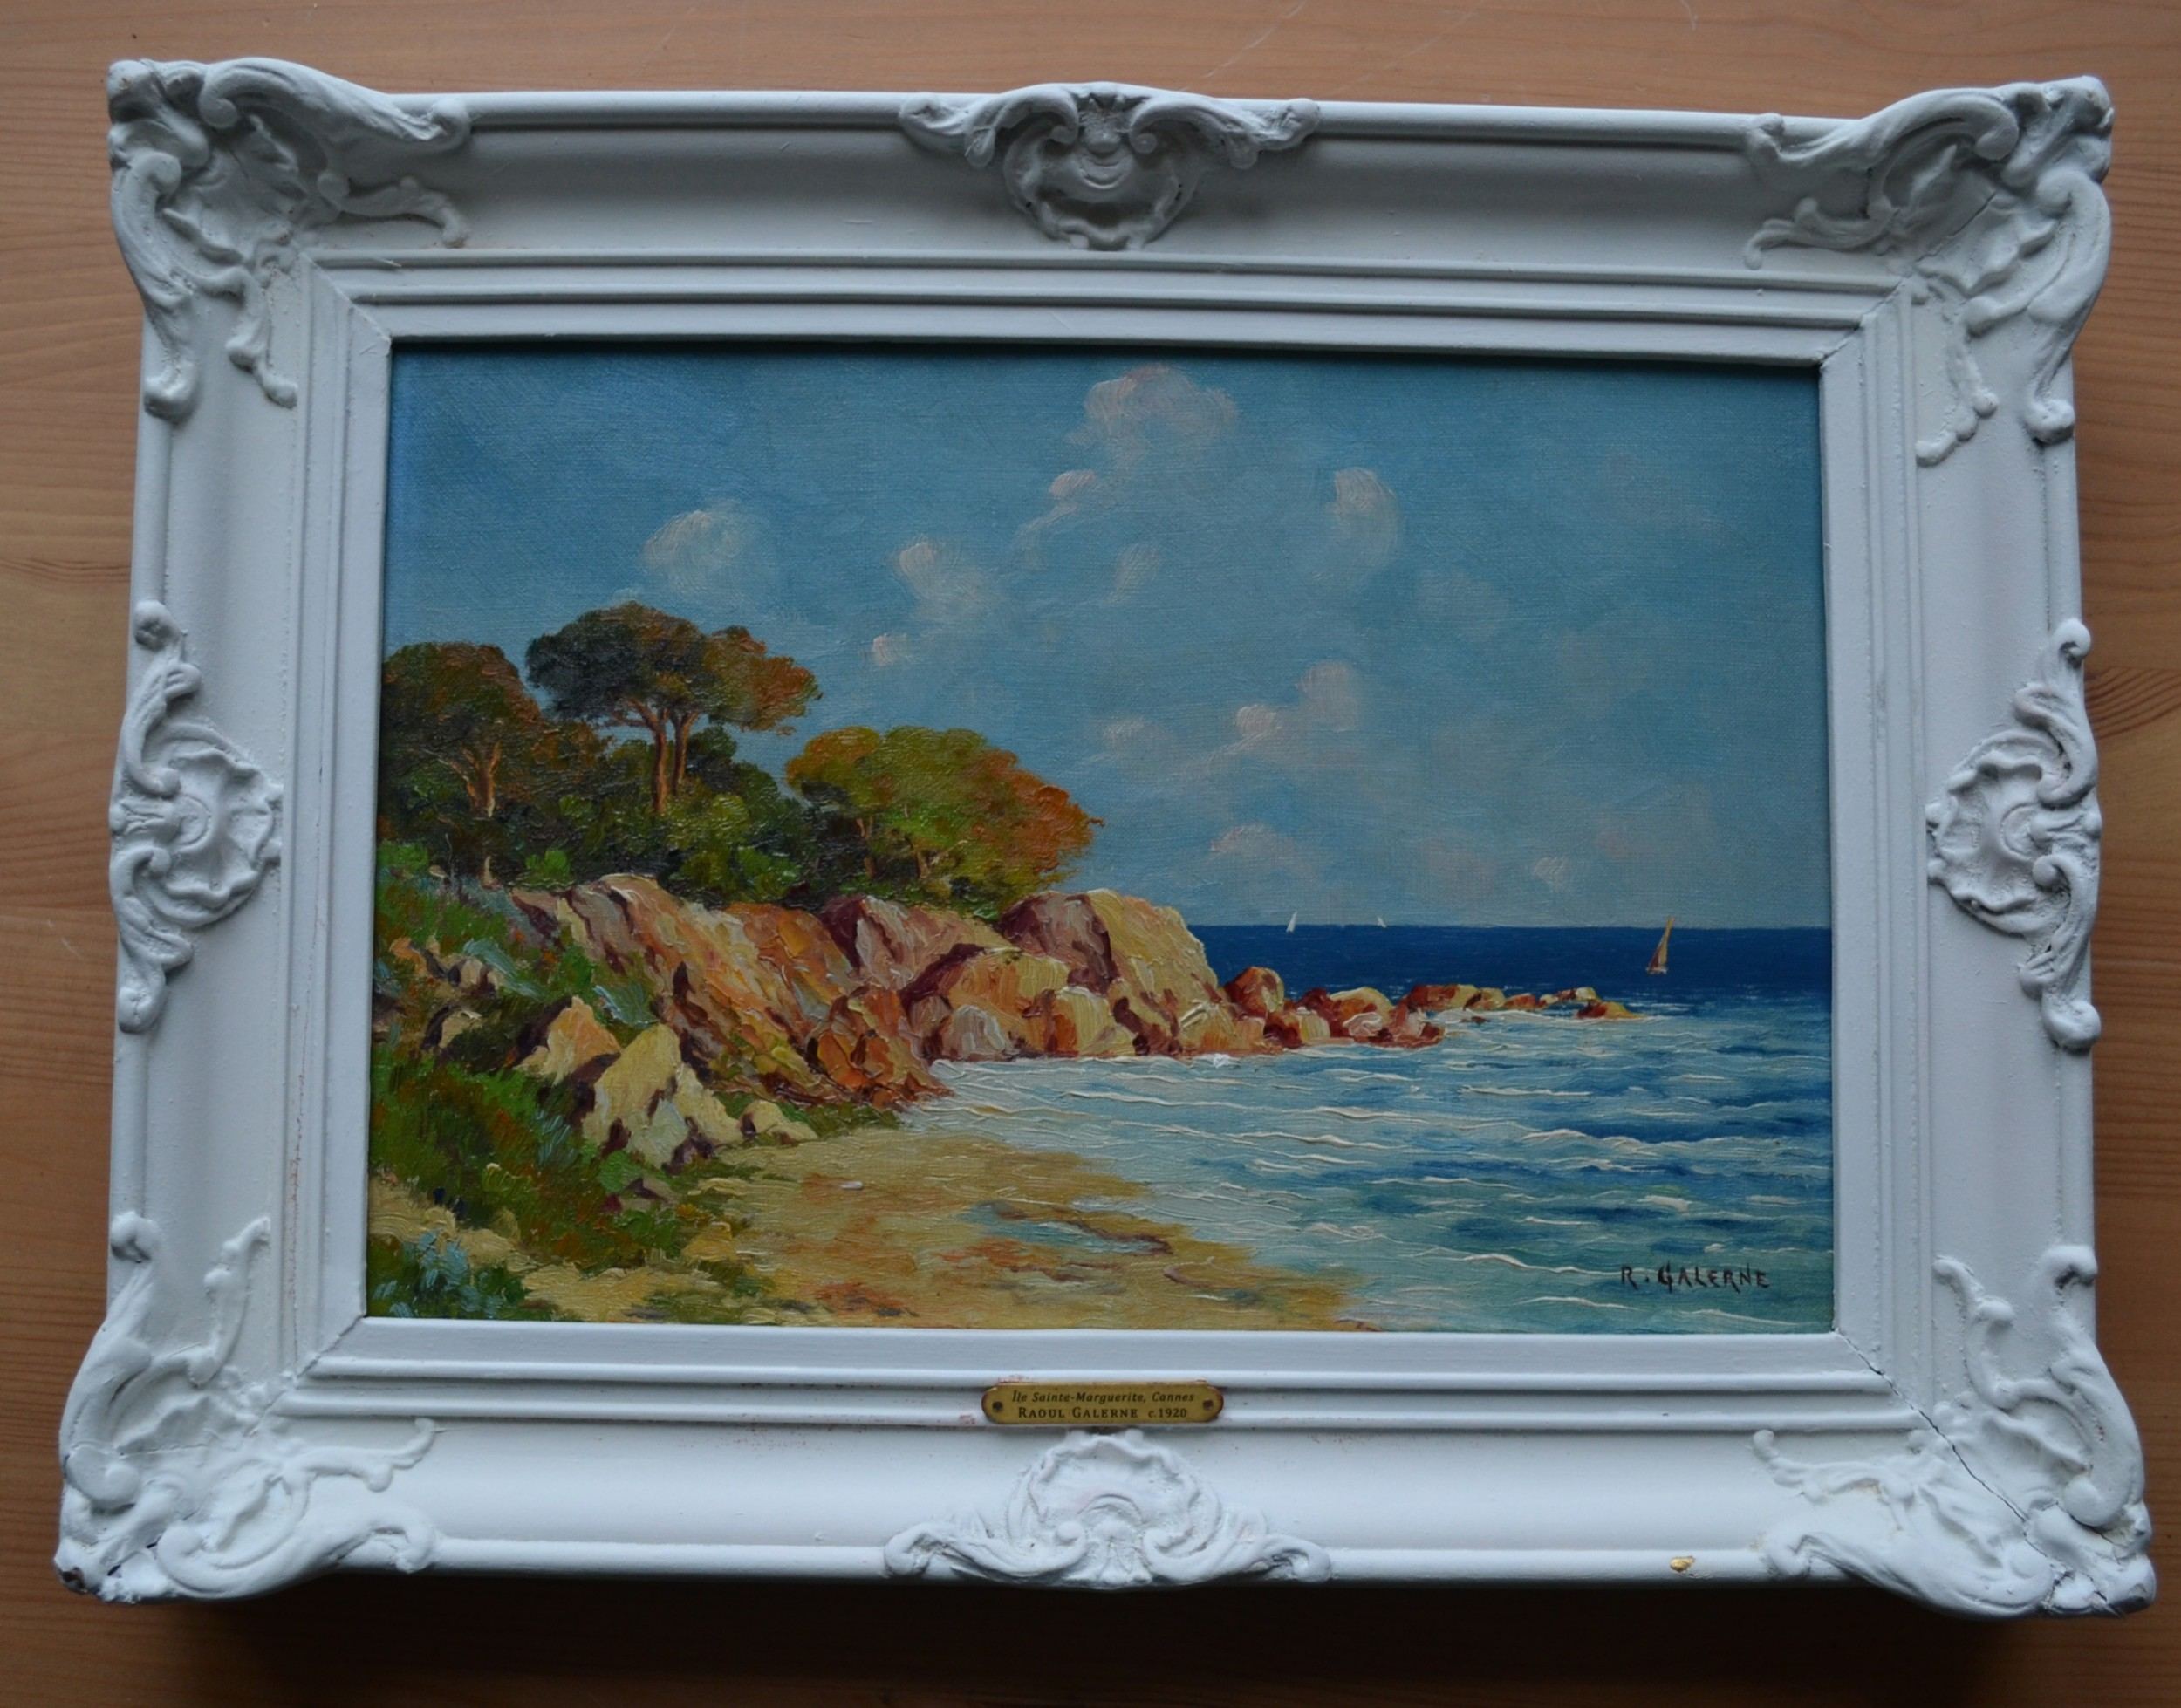 le saintemarguerite cannes c 1920 landscape oil painting on canvas raoul galerne french b1875